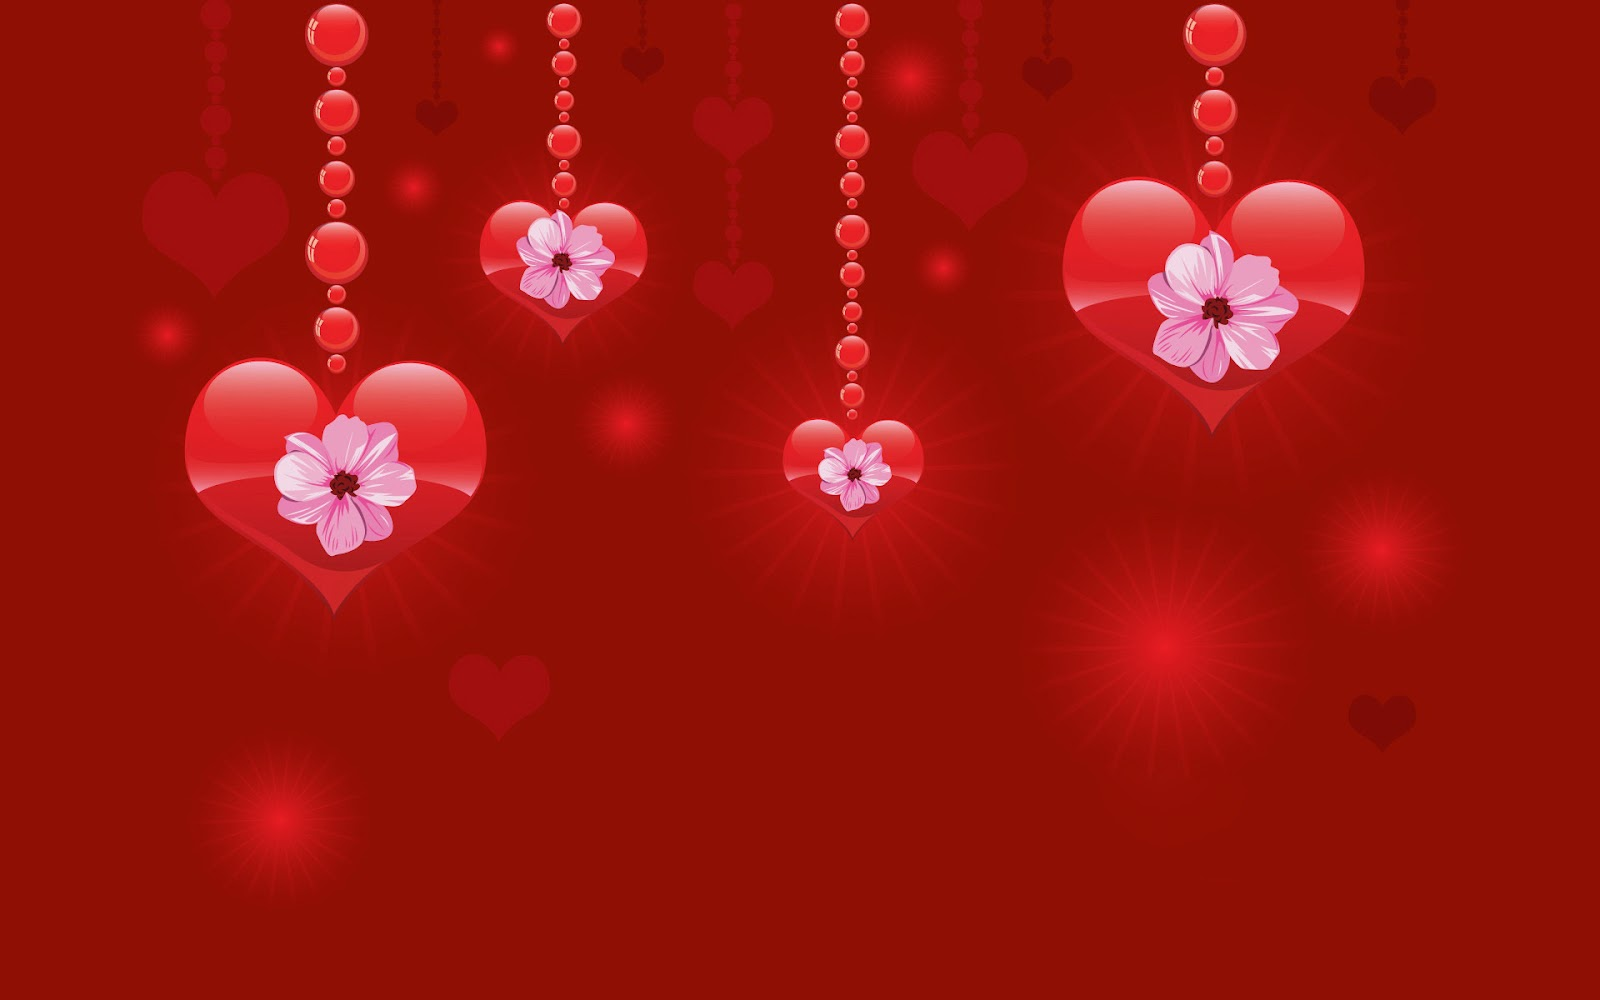 Valentines day wallpapers 2013 2014 love quotes - Valentines day background wallpaper ...